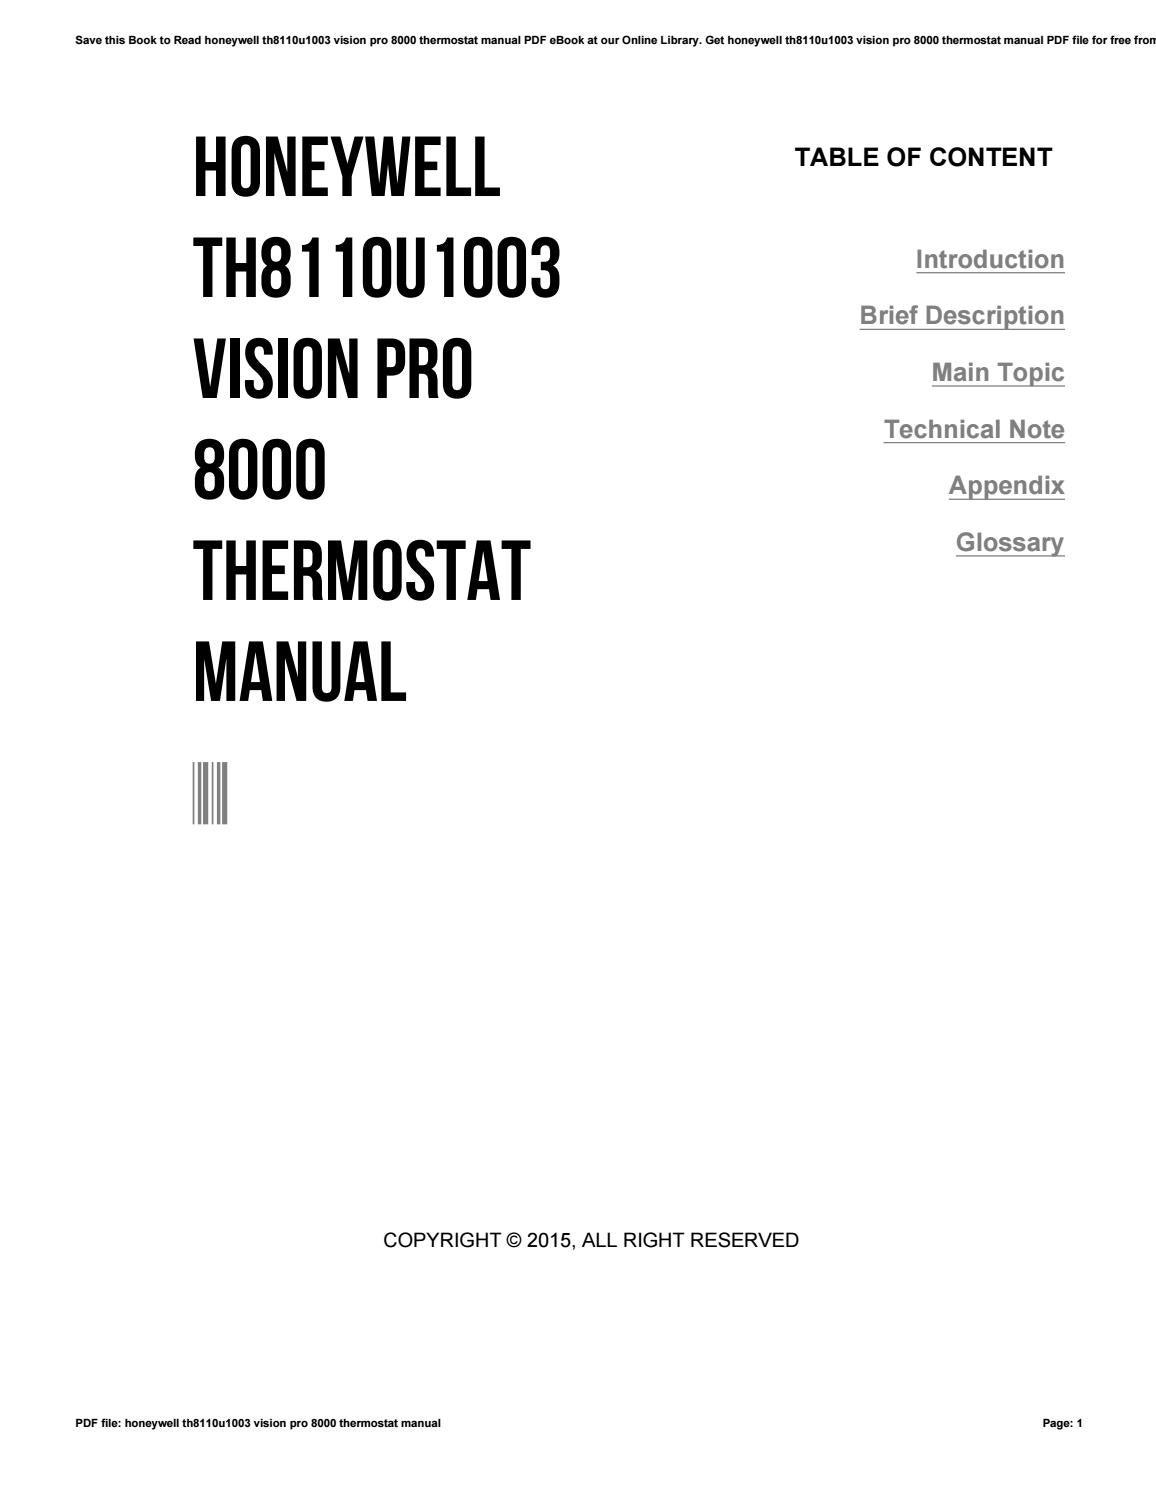 honeywell thermostat instructions pdf